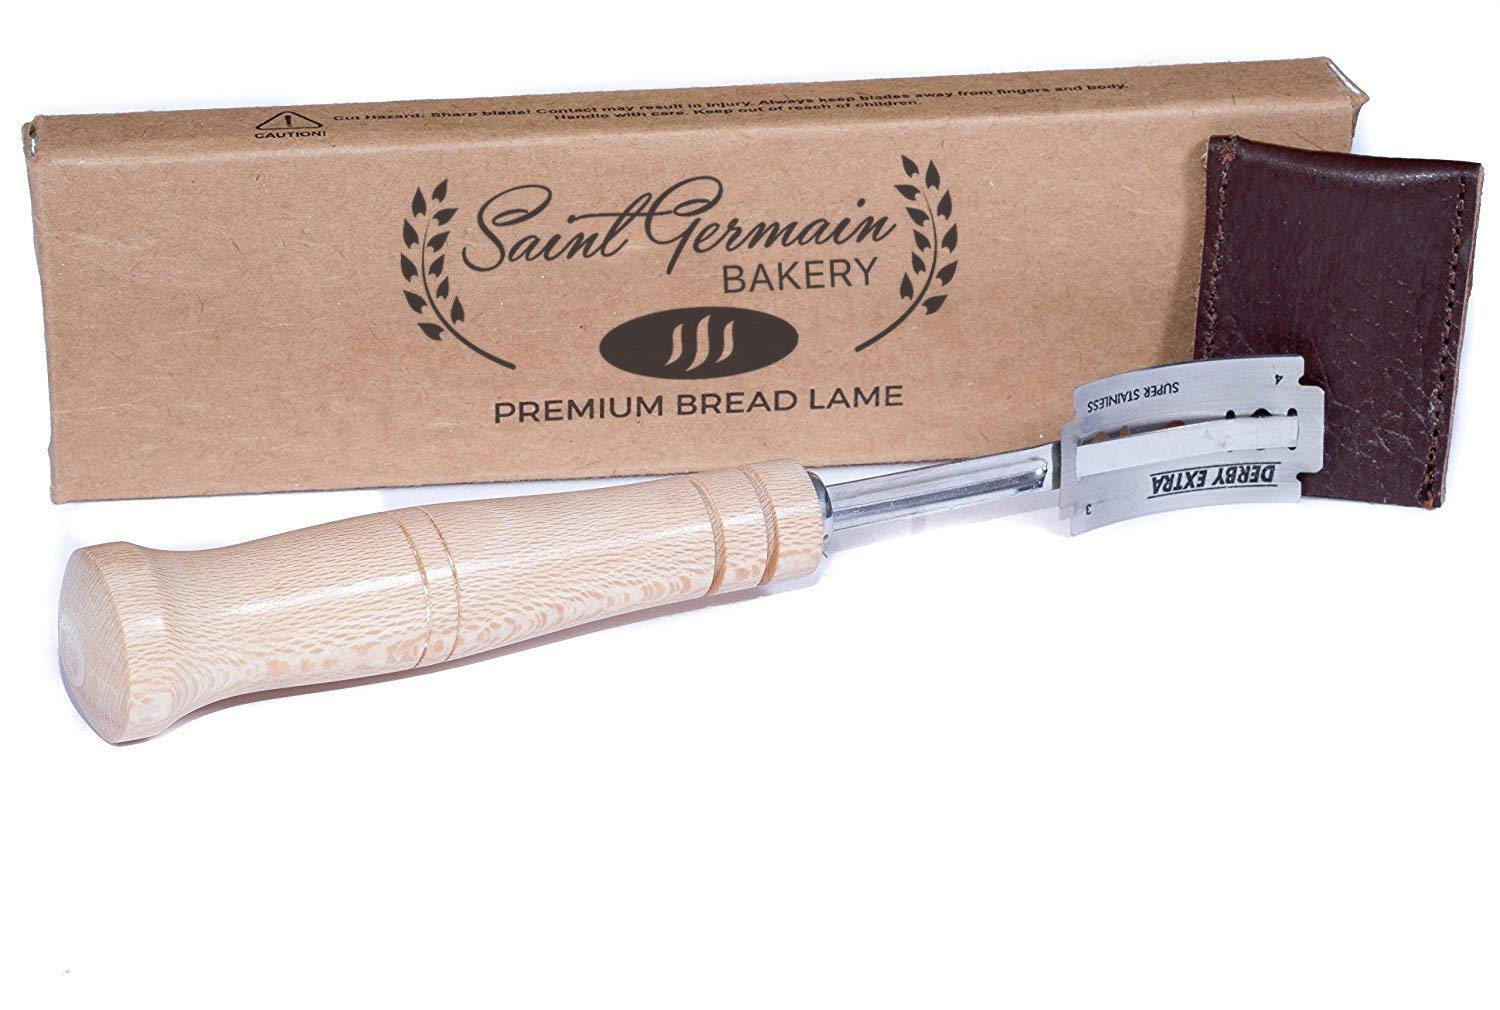 SAINT GERMAIN Premium Hand Crafted Bread Lame for Dough Scoring Knife, Lame Bread Tool for Sourdough Bread Slashing with 6 Blades Included with Authentic Leather Protector Cover